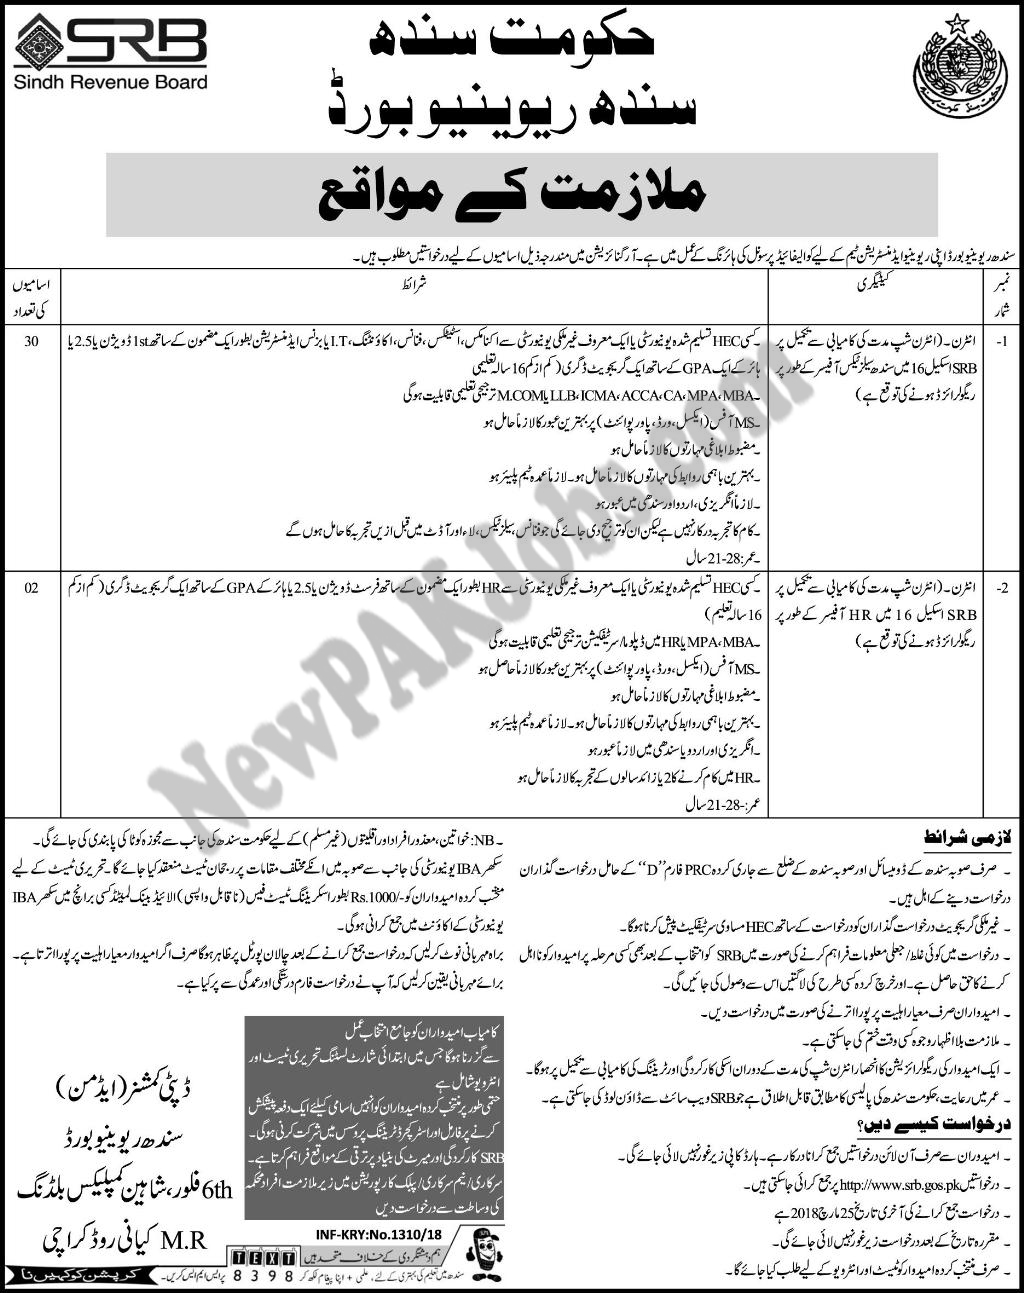 Latest Fresh Jobs in Sindh Revenue Board, Government of Sindh